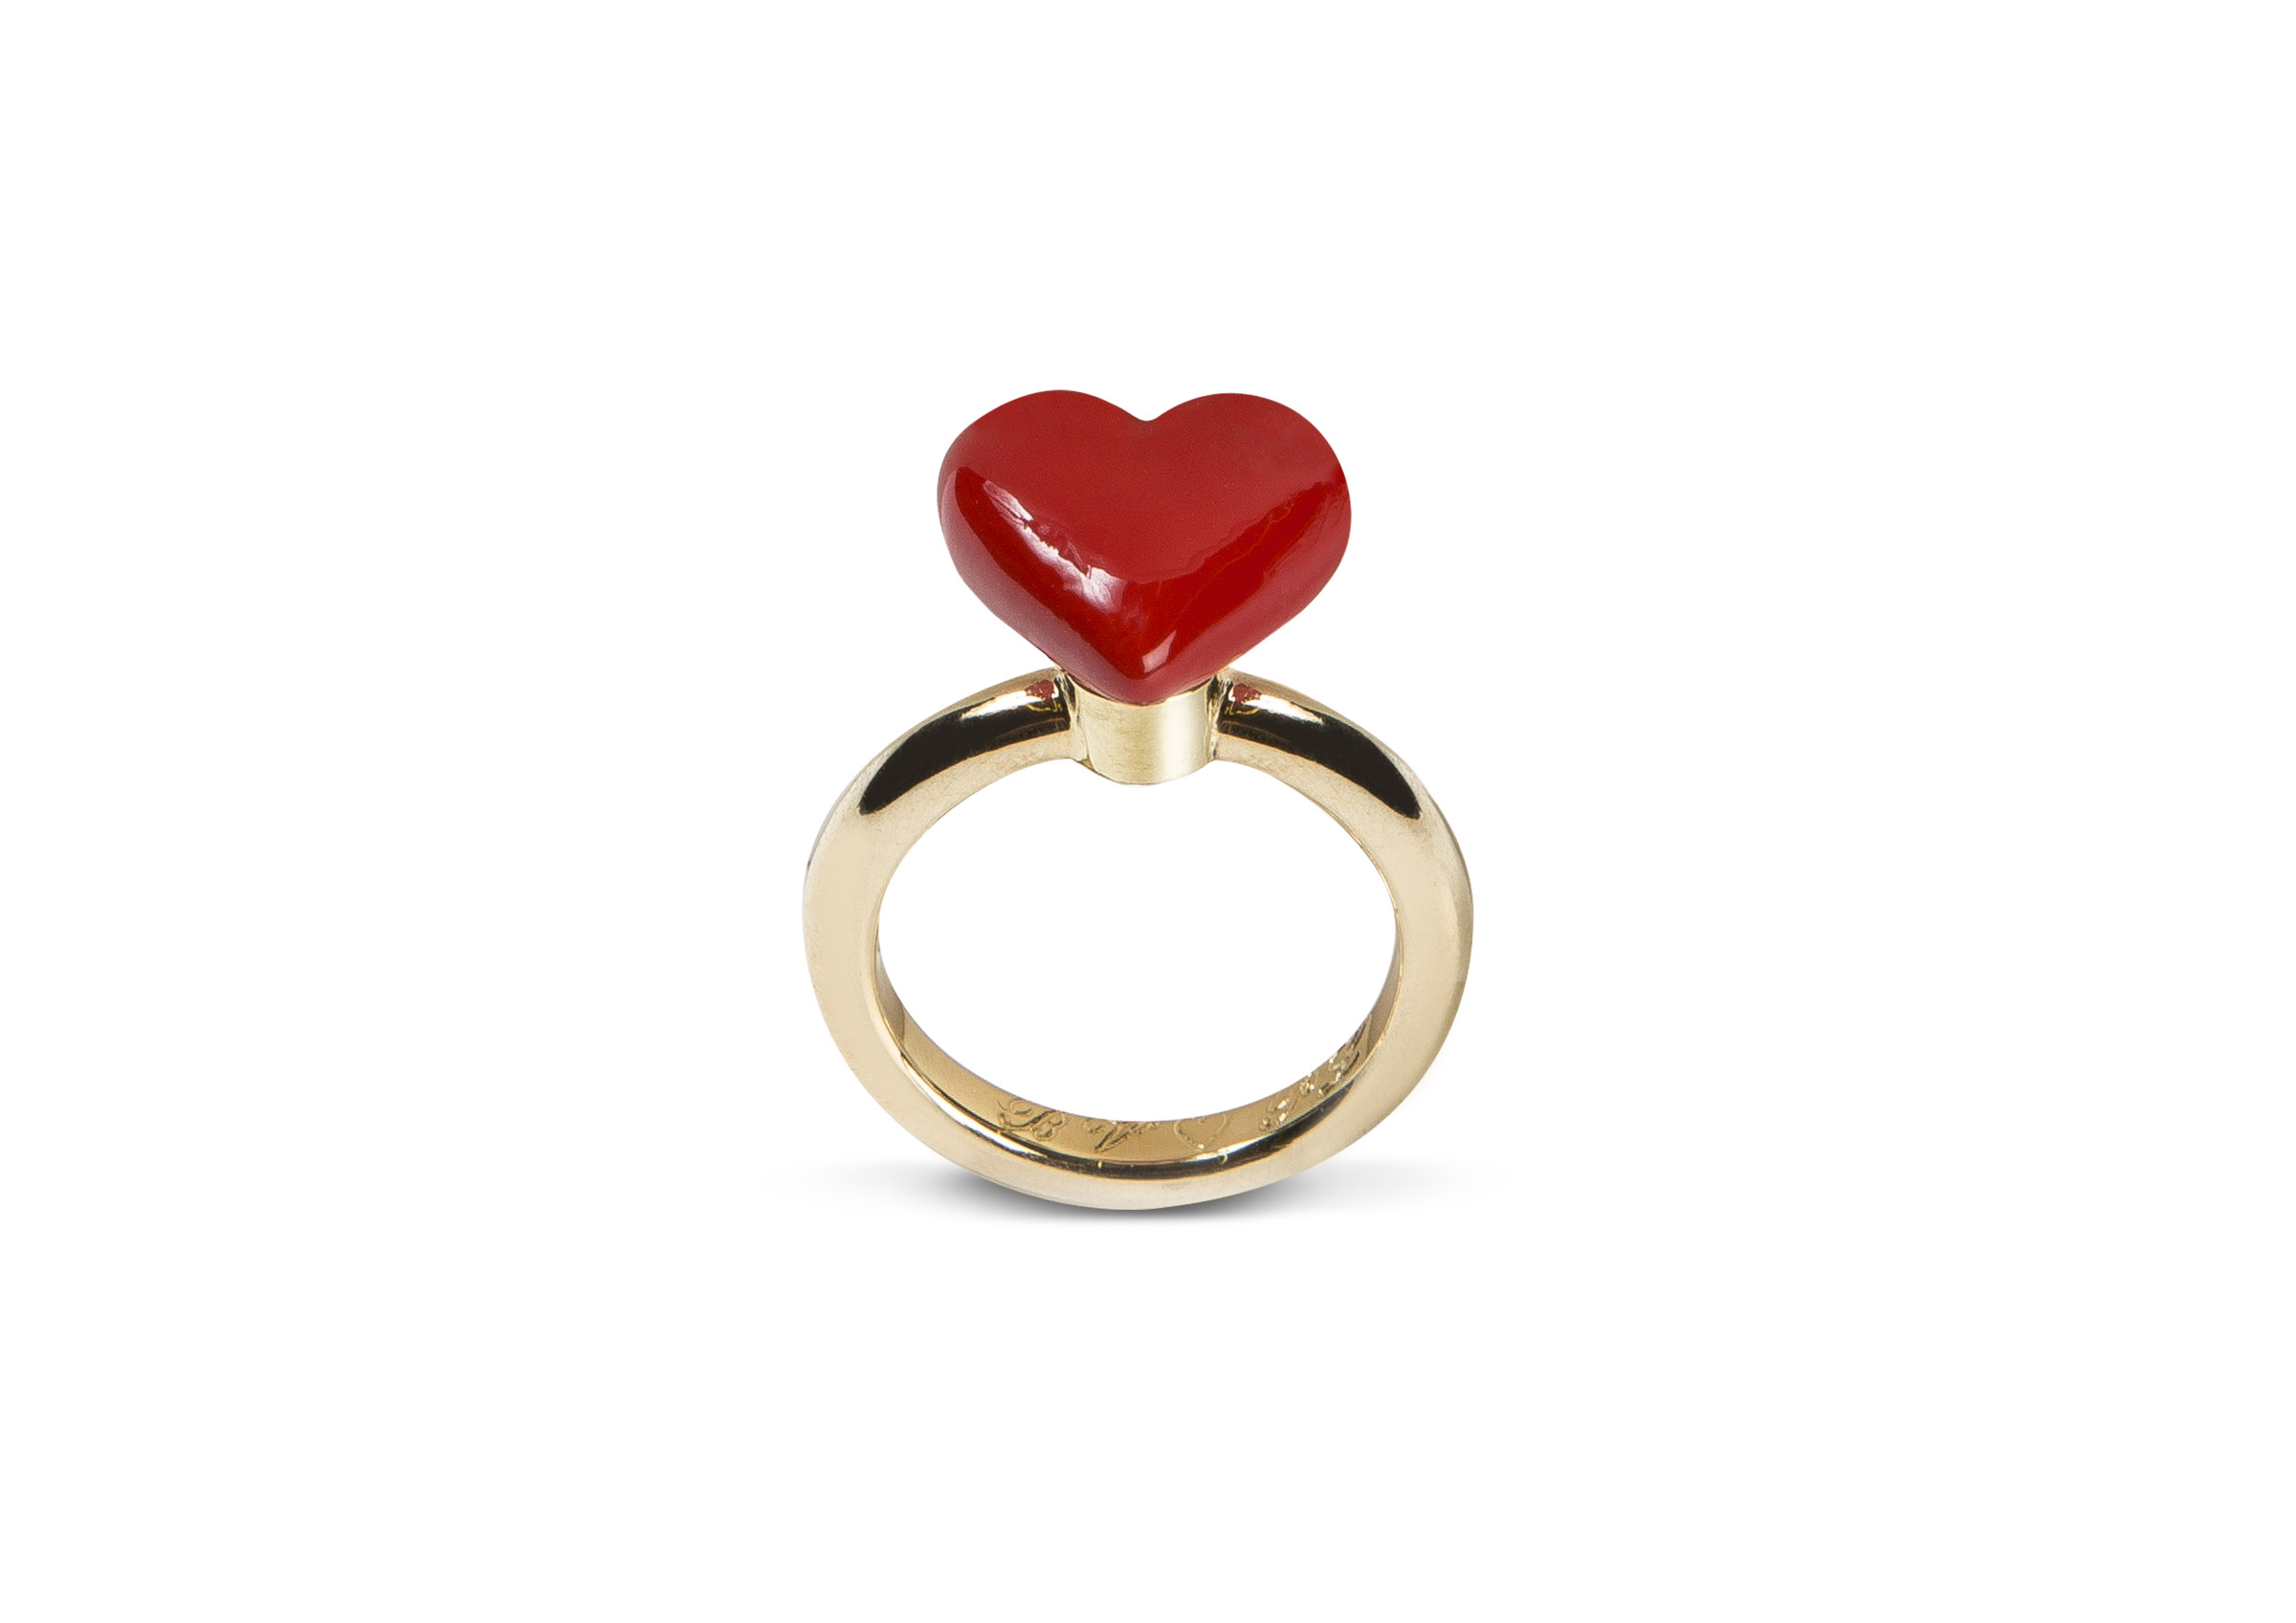 <span class=&#34;link fancybox-details-link&#34;><a href=&#34;/content/viewing-room/22/artworks5207/&#34;>View Detail Page</a></span><div class=&#34;artist&#34;><strong>Studio Job</strong></div><div class=&#34;title&#34;><em>Heart Ring&#160;</em></div><div class=&#34;medium&#34;>Ring: 14 carat yellow gold<br />Heart: sterling silver, coating</div>